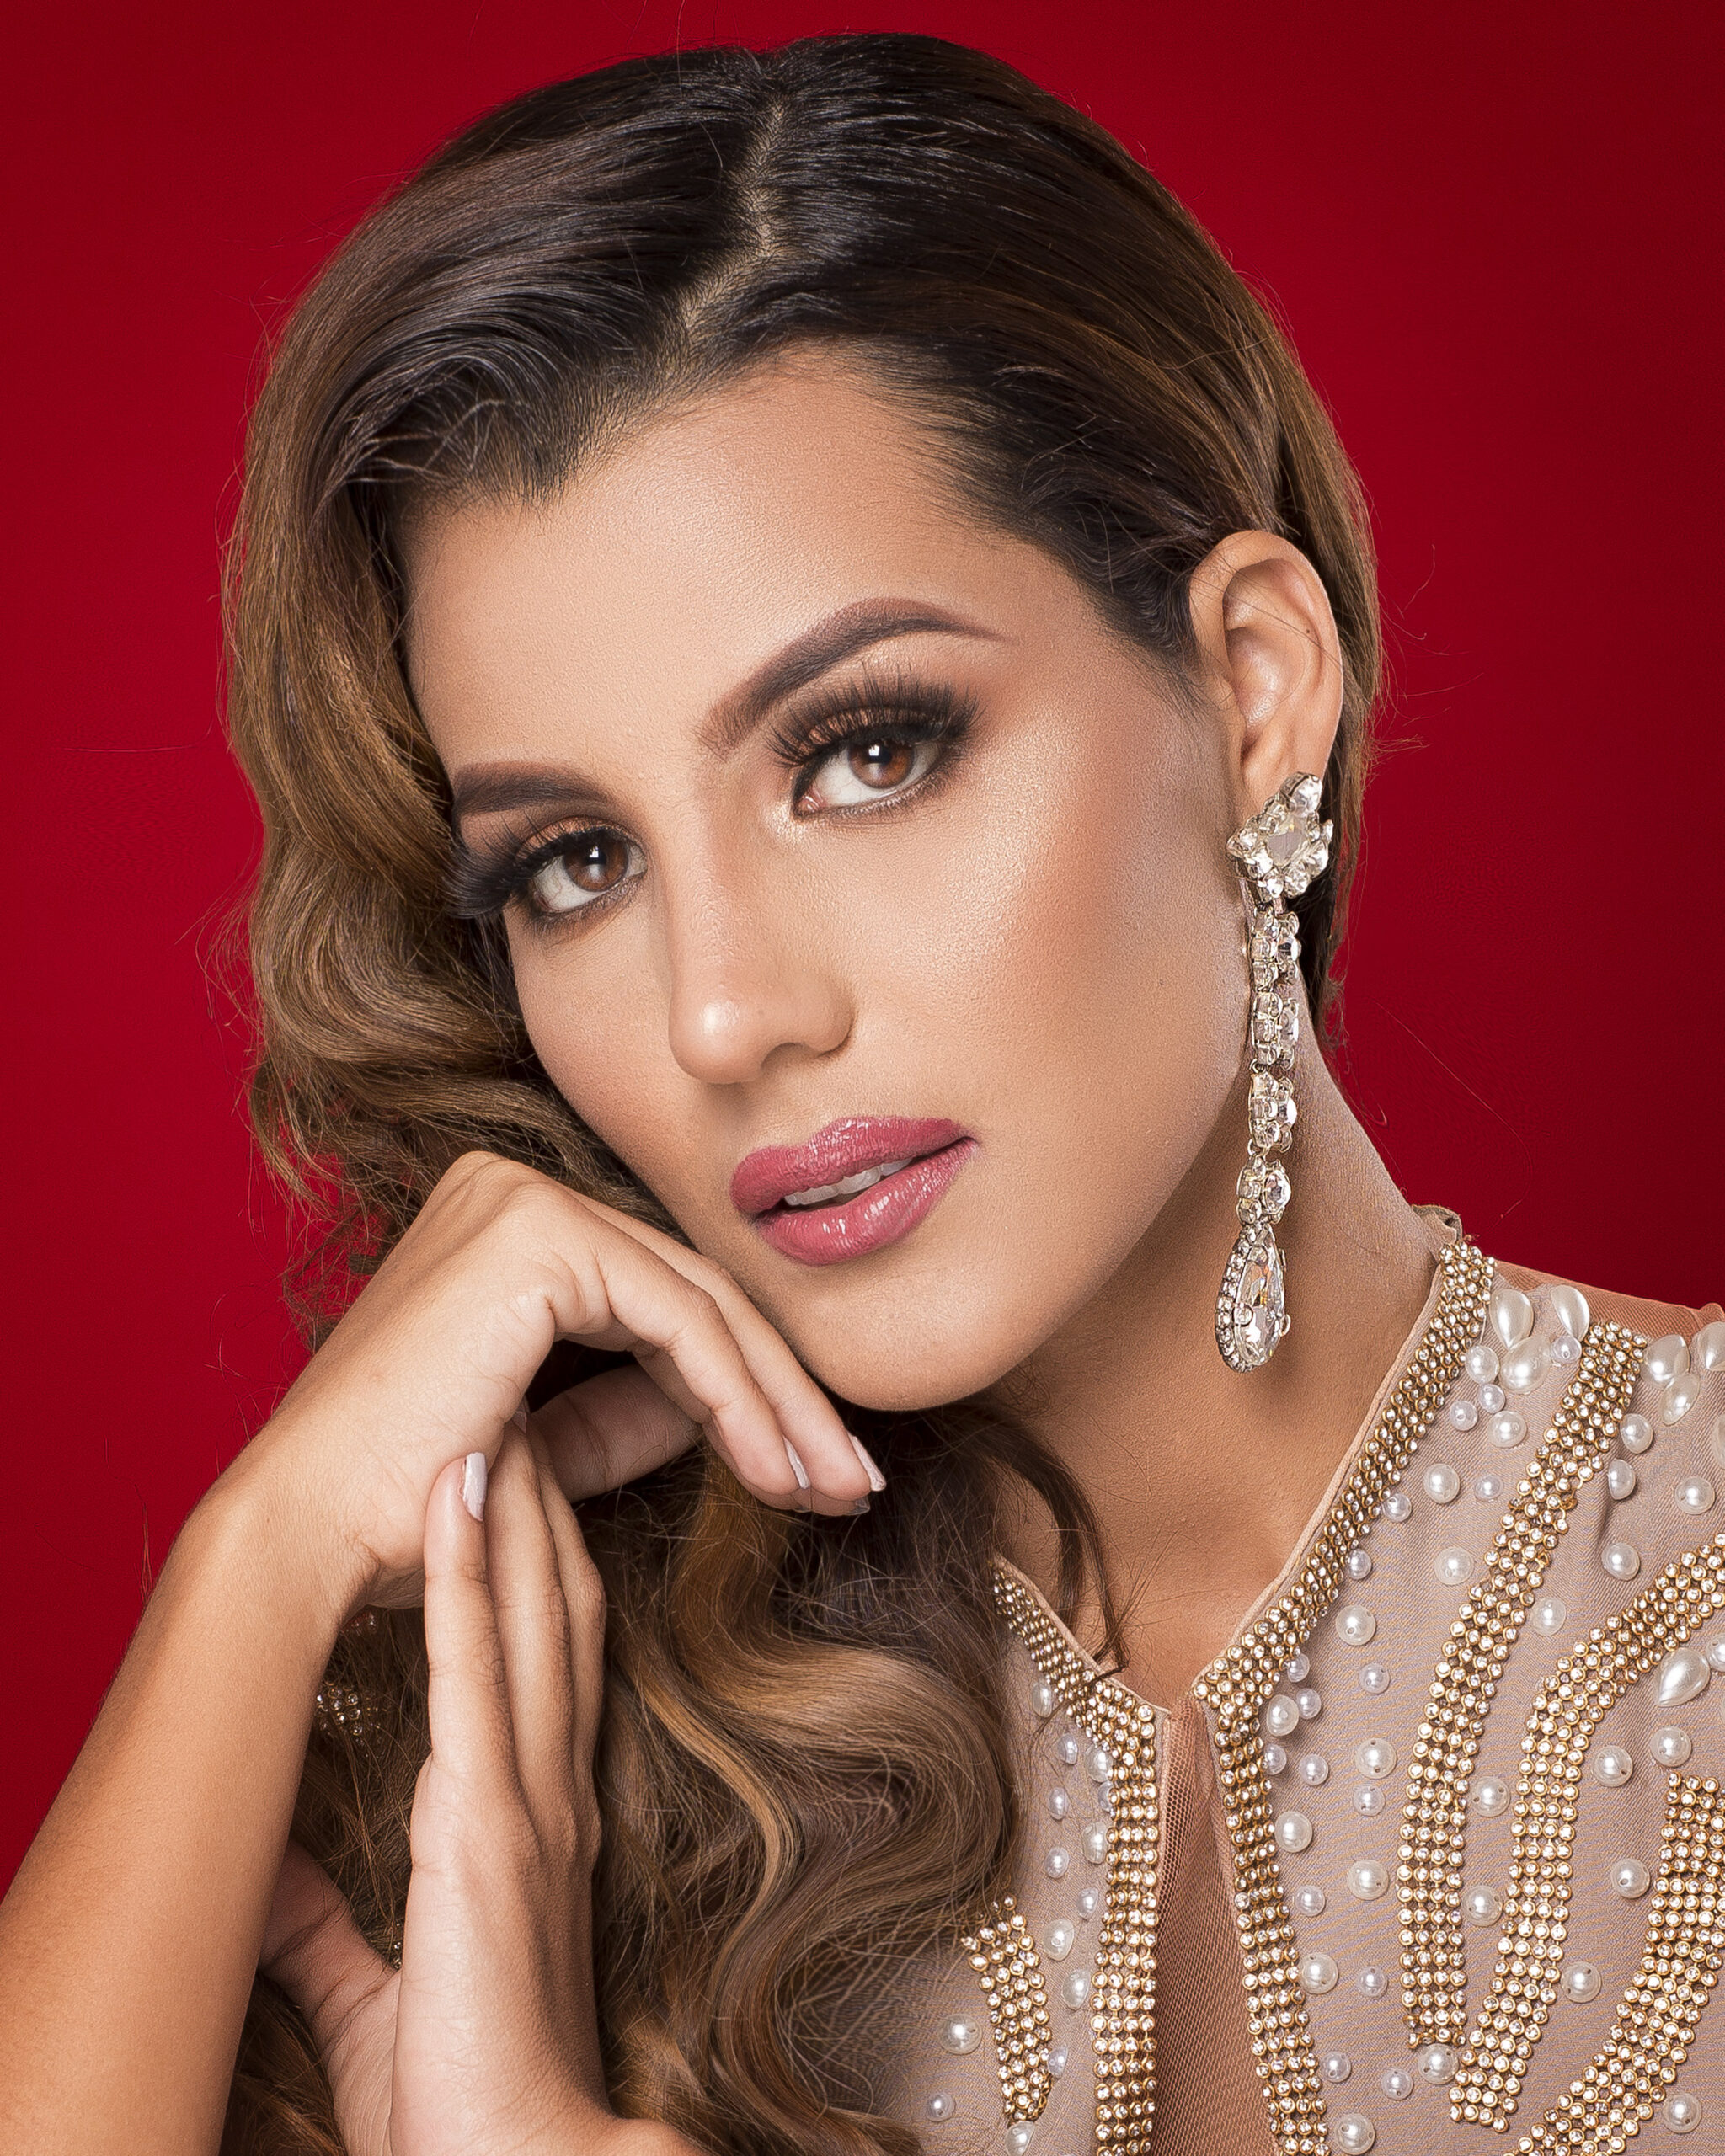 ROMINA COLÓN DICE PRESENTE EN LA GALA VIRTUAL DEL MISS EMERALD PAGEANT INTERNACIONAL 2020